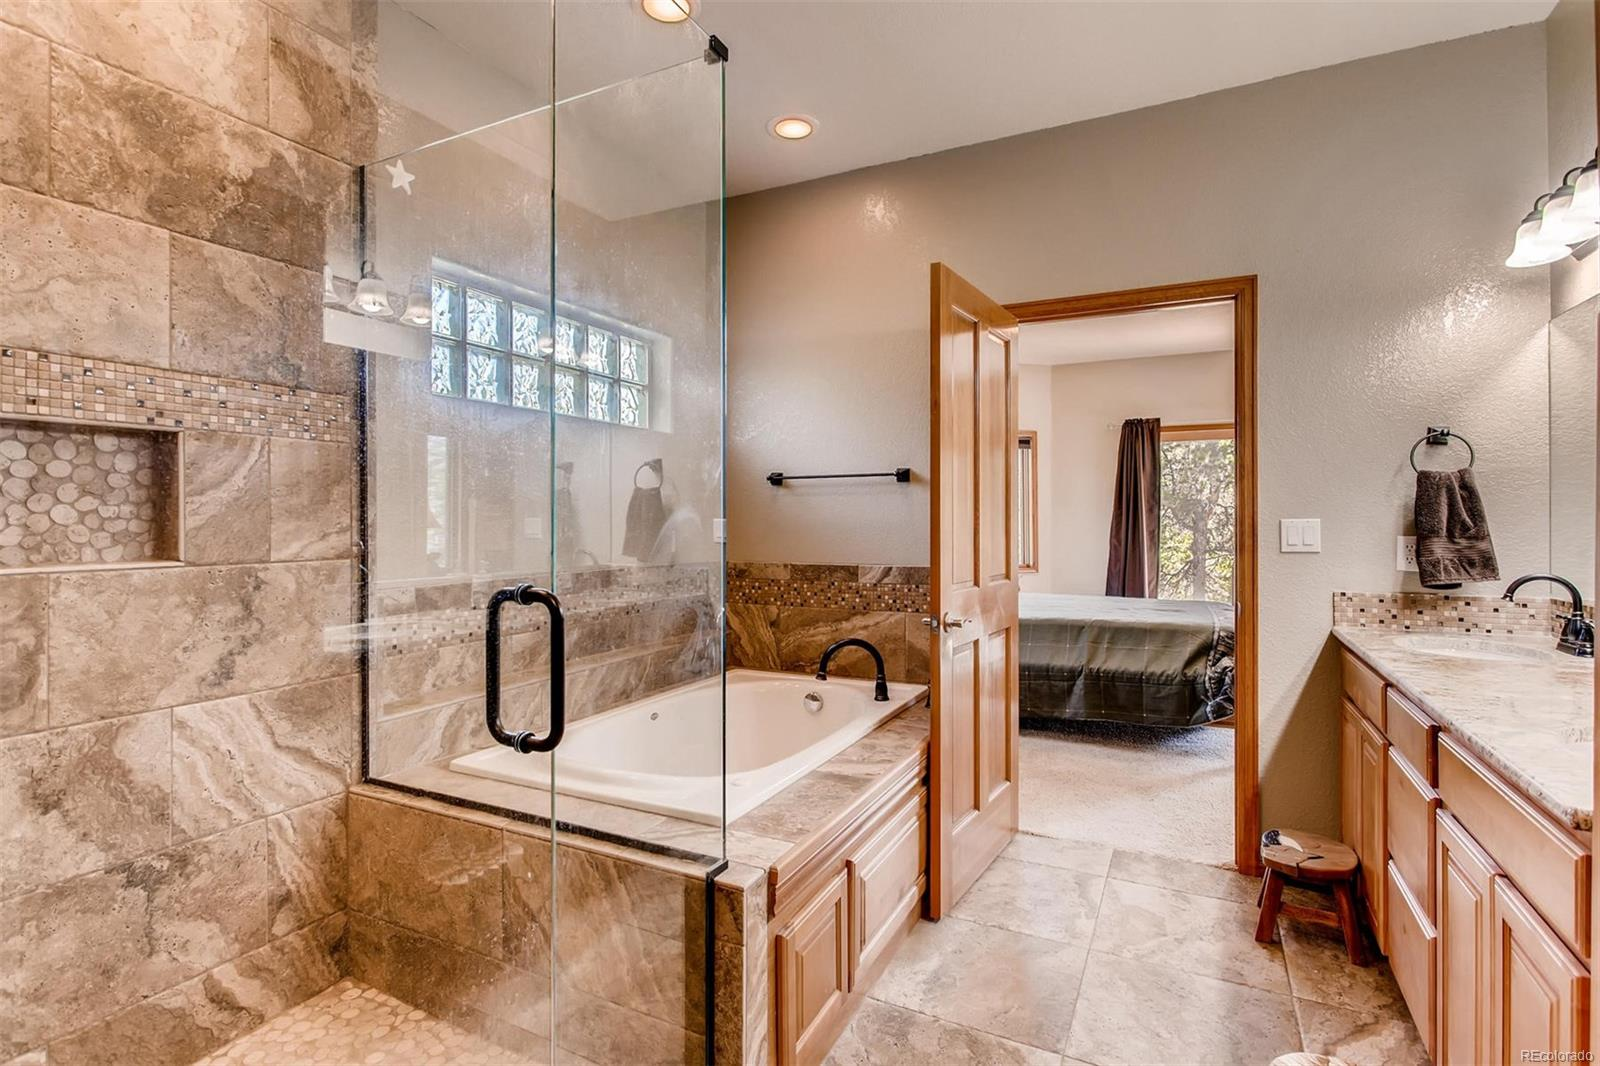 The jack-and-jill bathroom is spectacular! From the large tub to the gorgeous sh